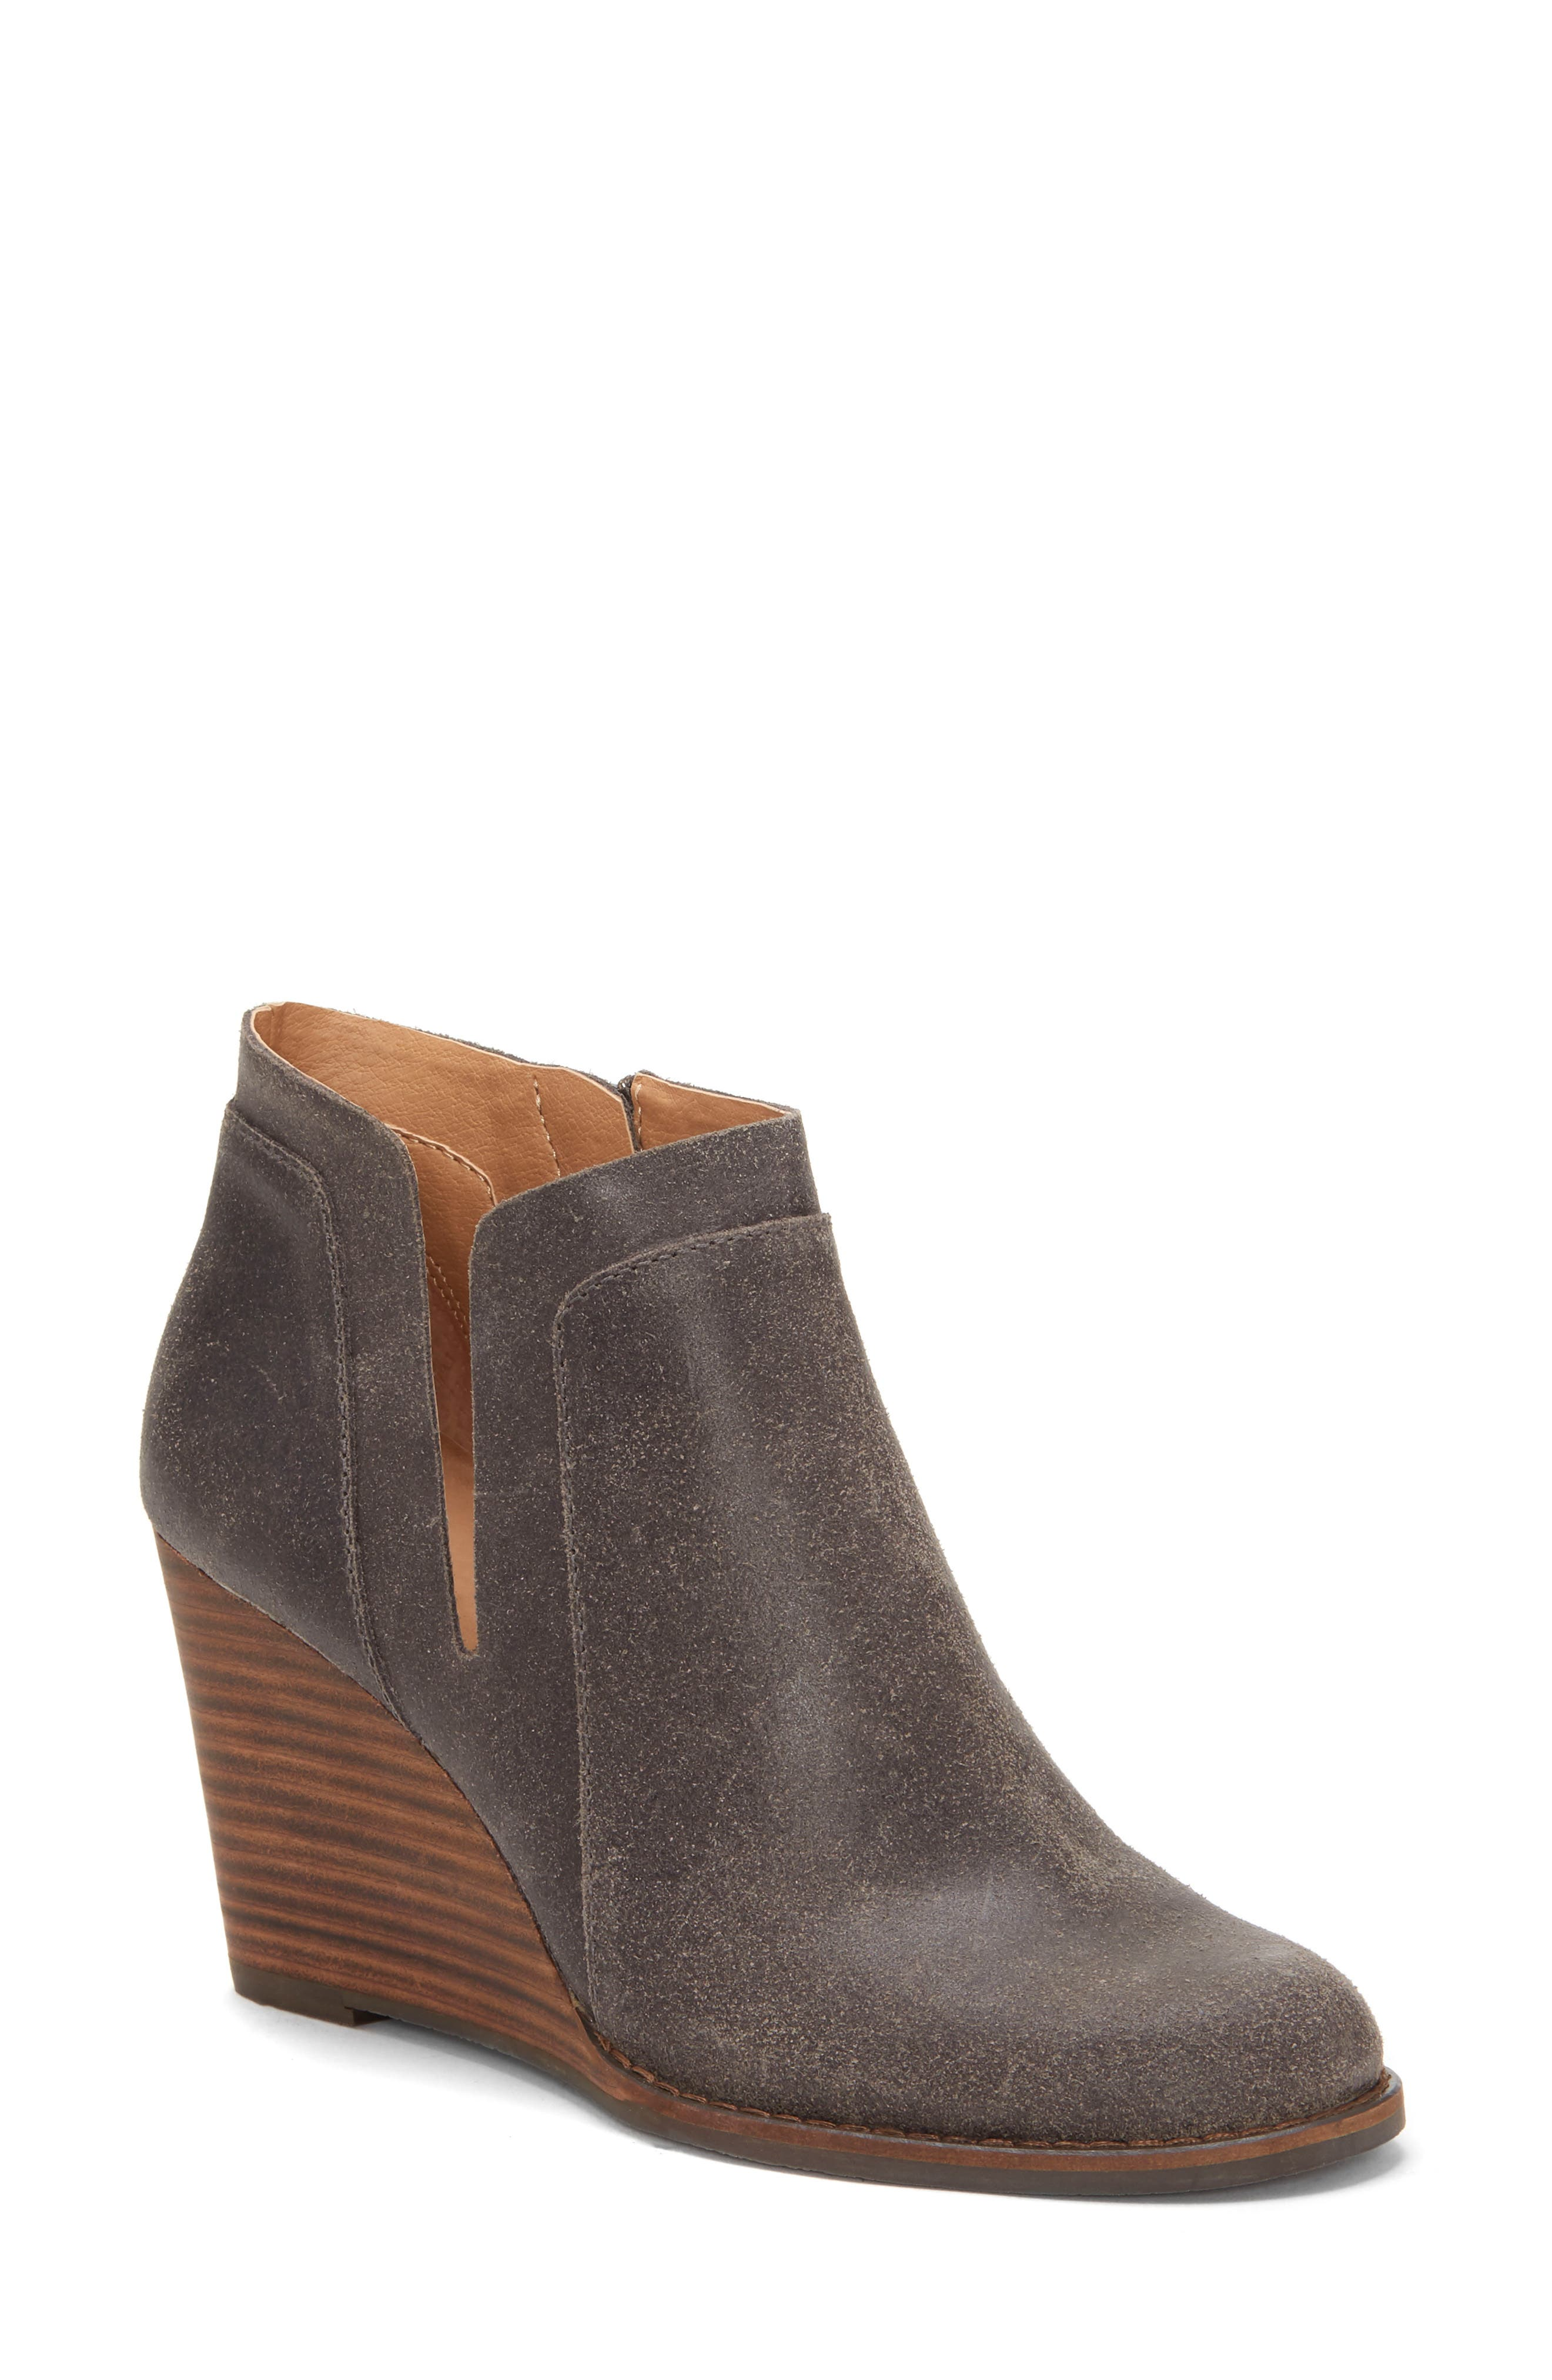 LUCKY BRAND, Yabba Wedge Bootie, Main thumbnail 1, color, STORM NUBUCK